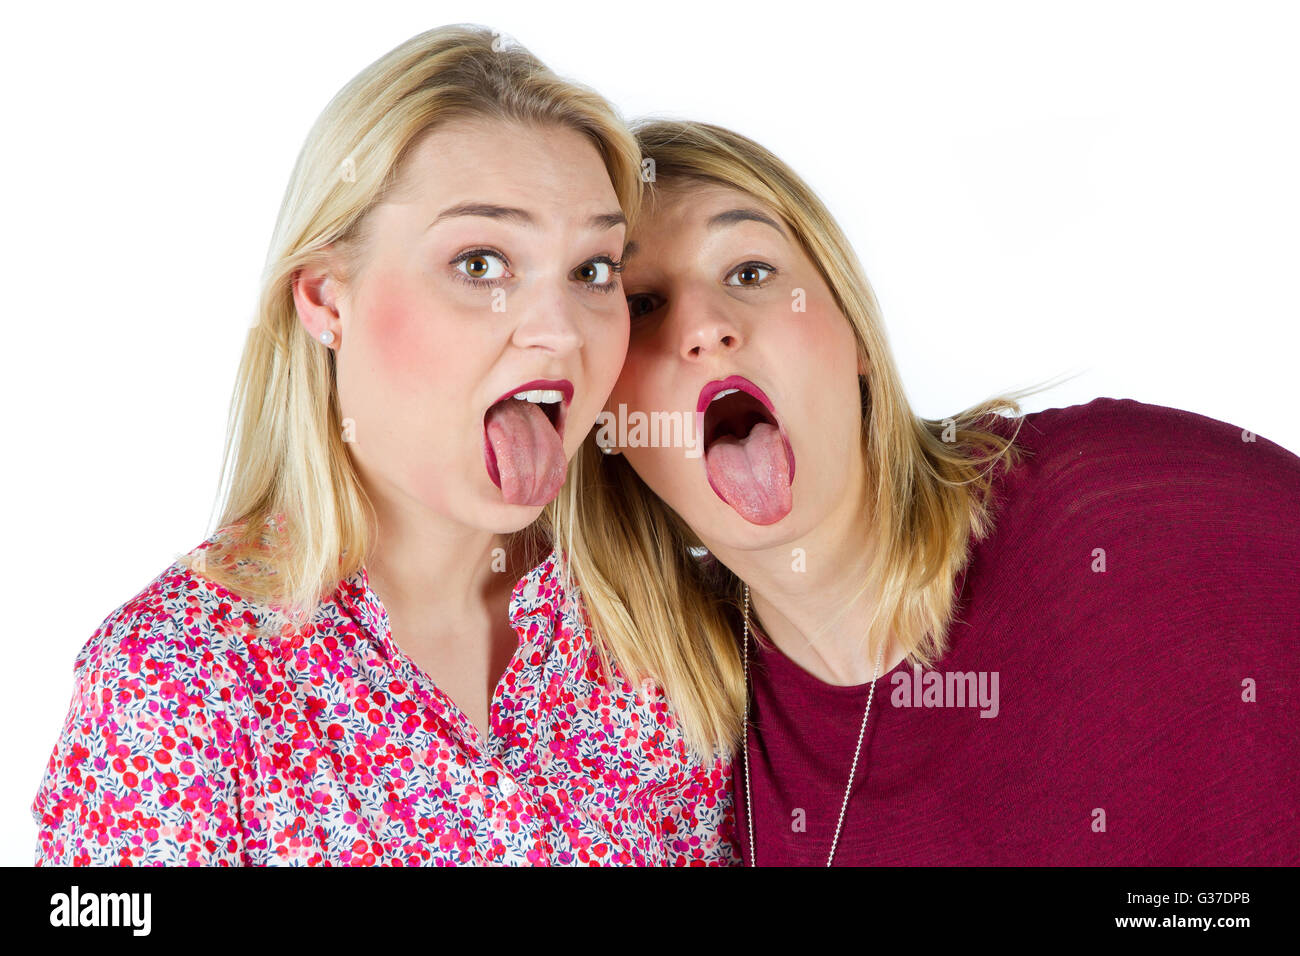 Two girls sticking tongue out - Stock Image